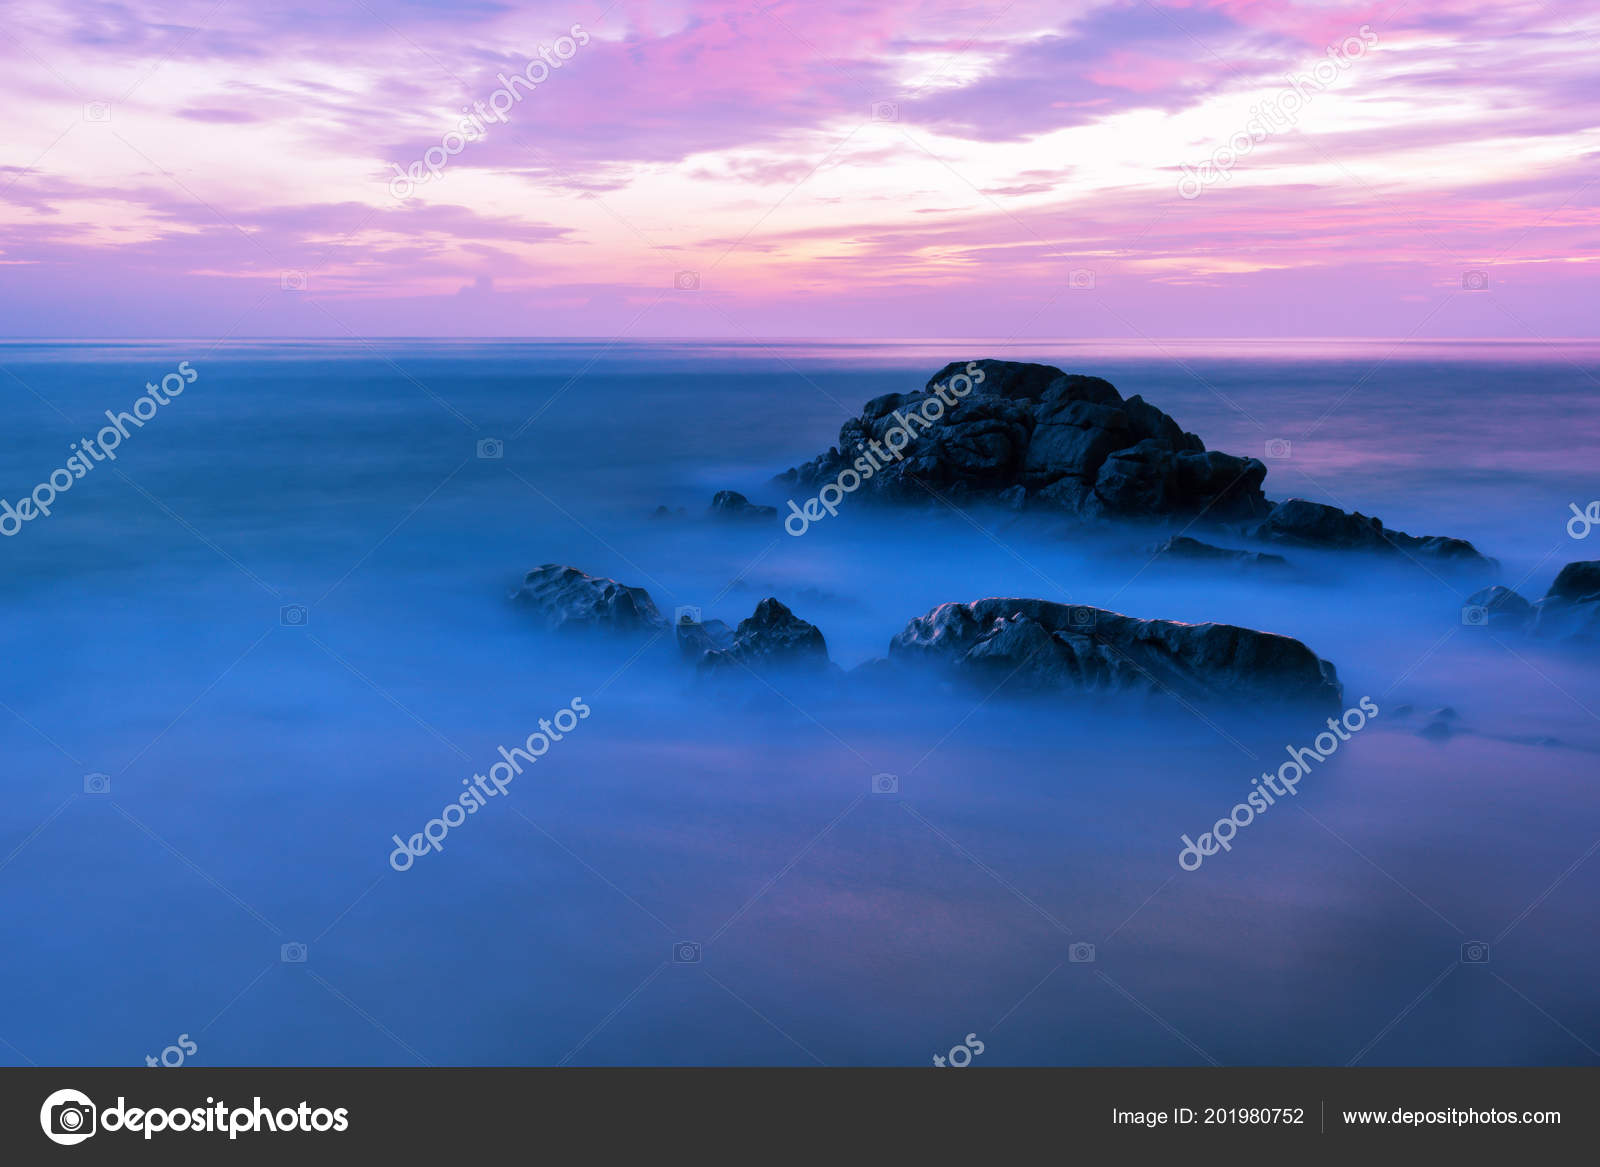 Long Exposure Image Of Dramatic Sky And Wave Seascape With Rock In Sunset Scenery Backgroundbeautiful Landscape For Nature Background Or Wallpaper Photo